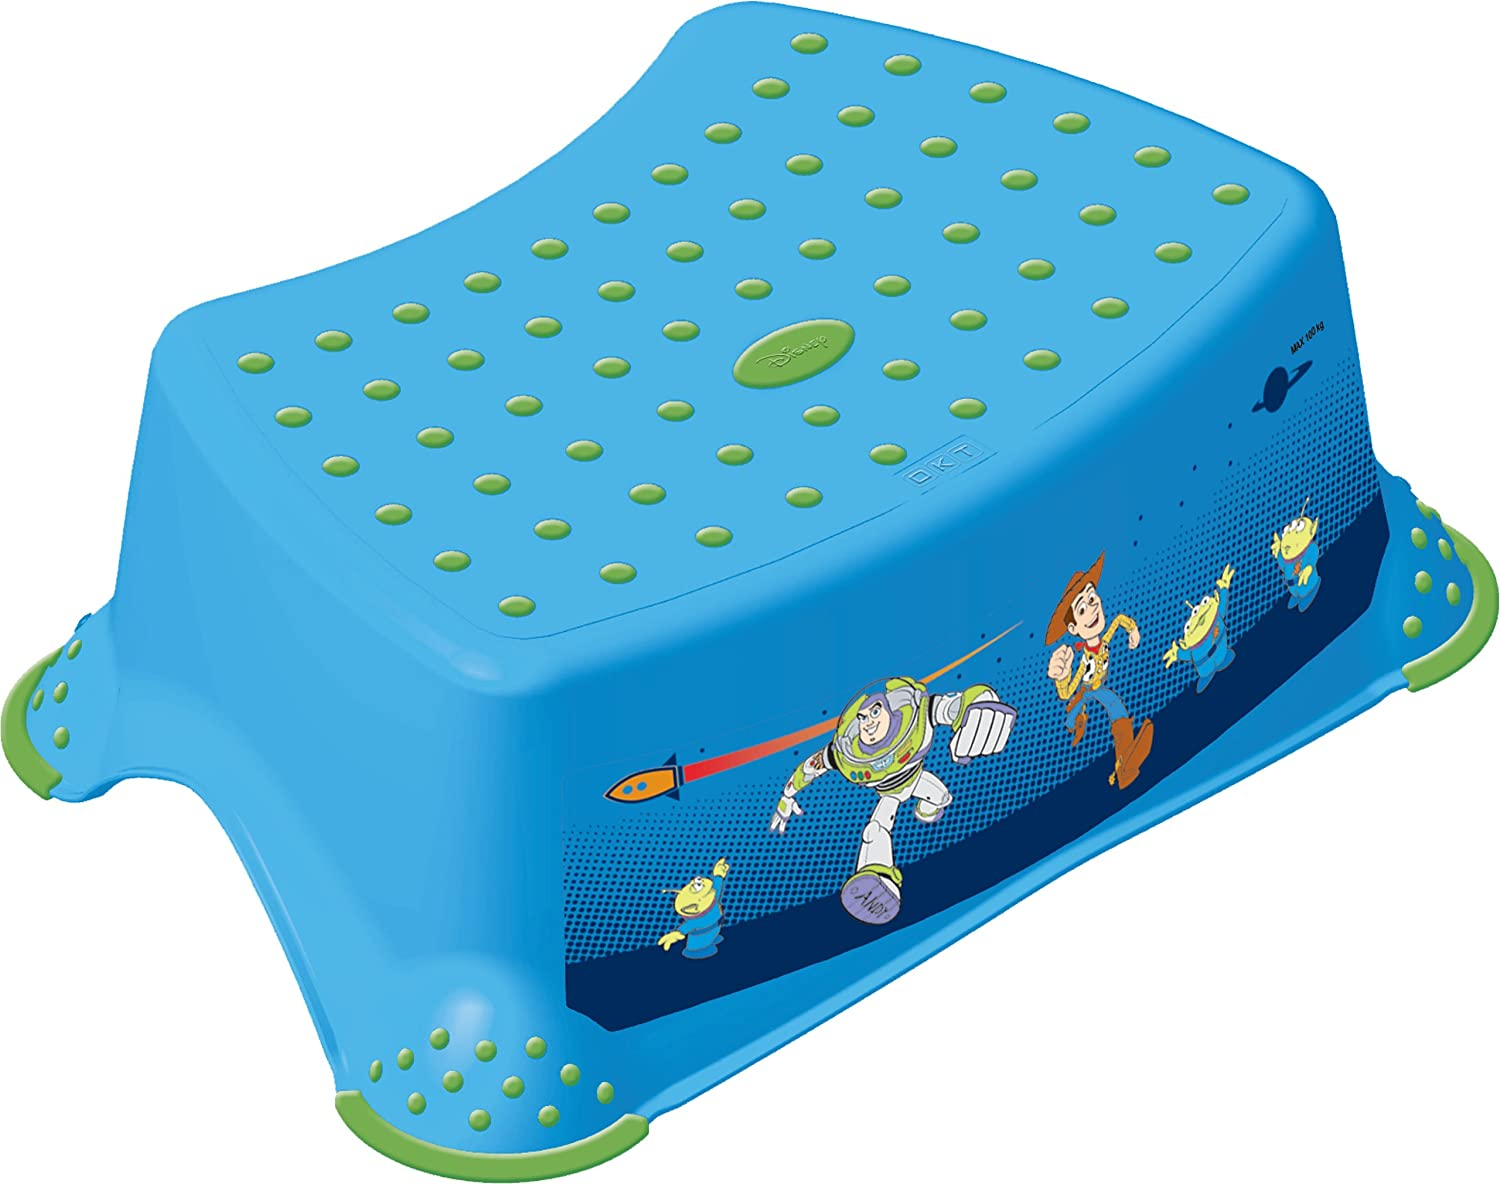 sc 1 st  Amazon.com & Amazon.com: Disney Toy Story Step Stool: Home Improvement islam-shia.org